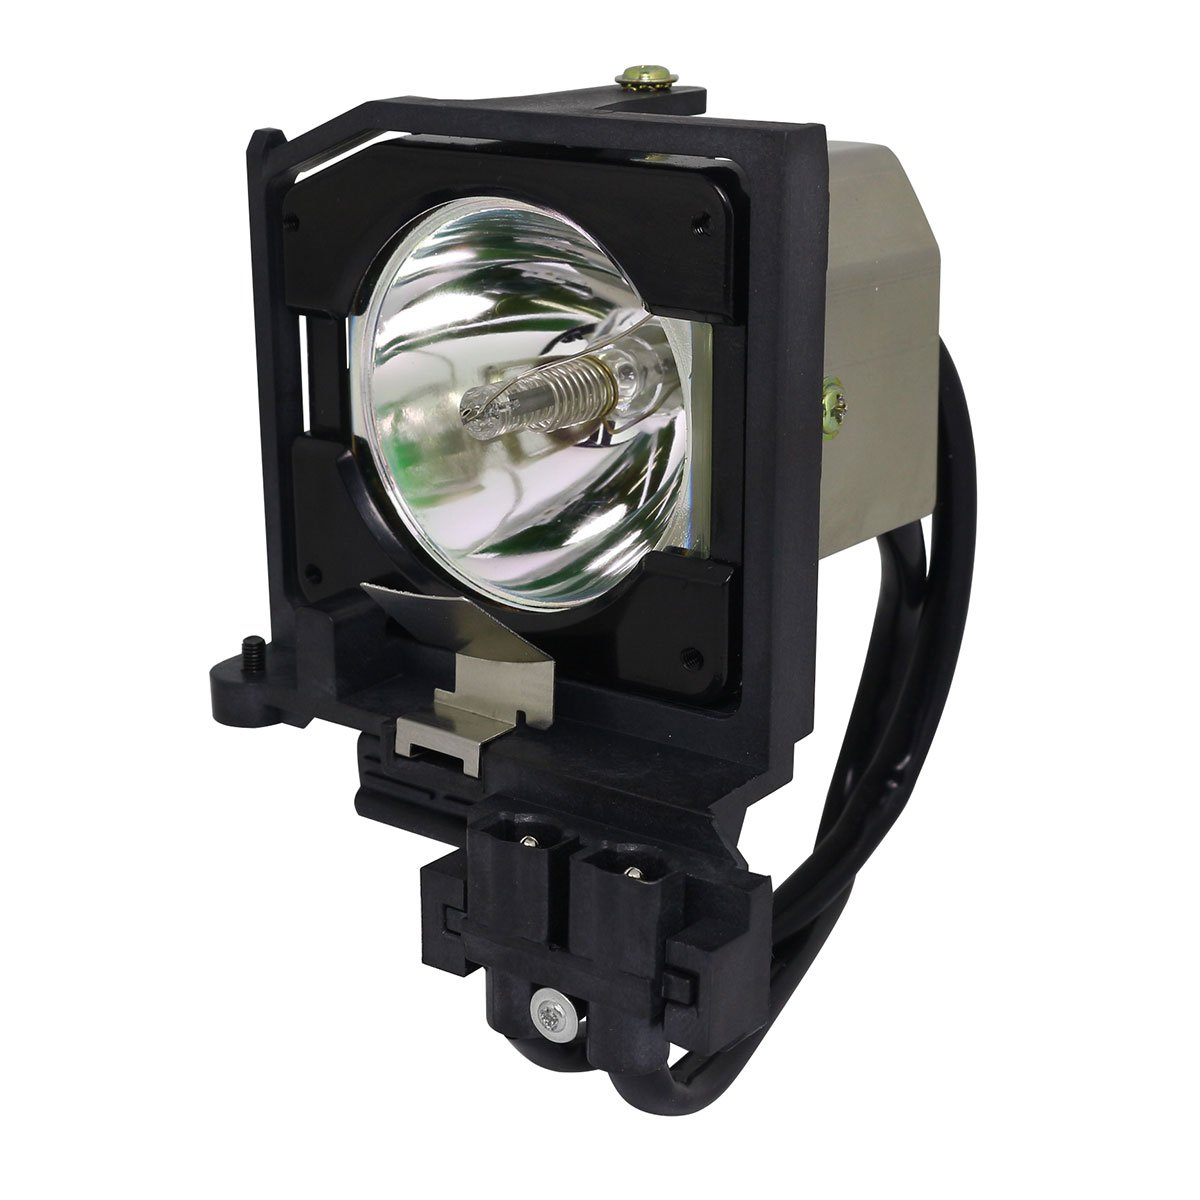 OEM 3m Projector Lamp, Replaces Model Digital Media System 810 with Housing